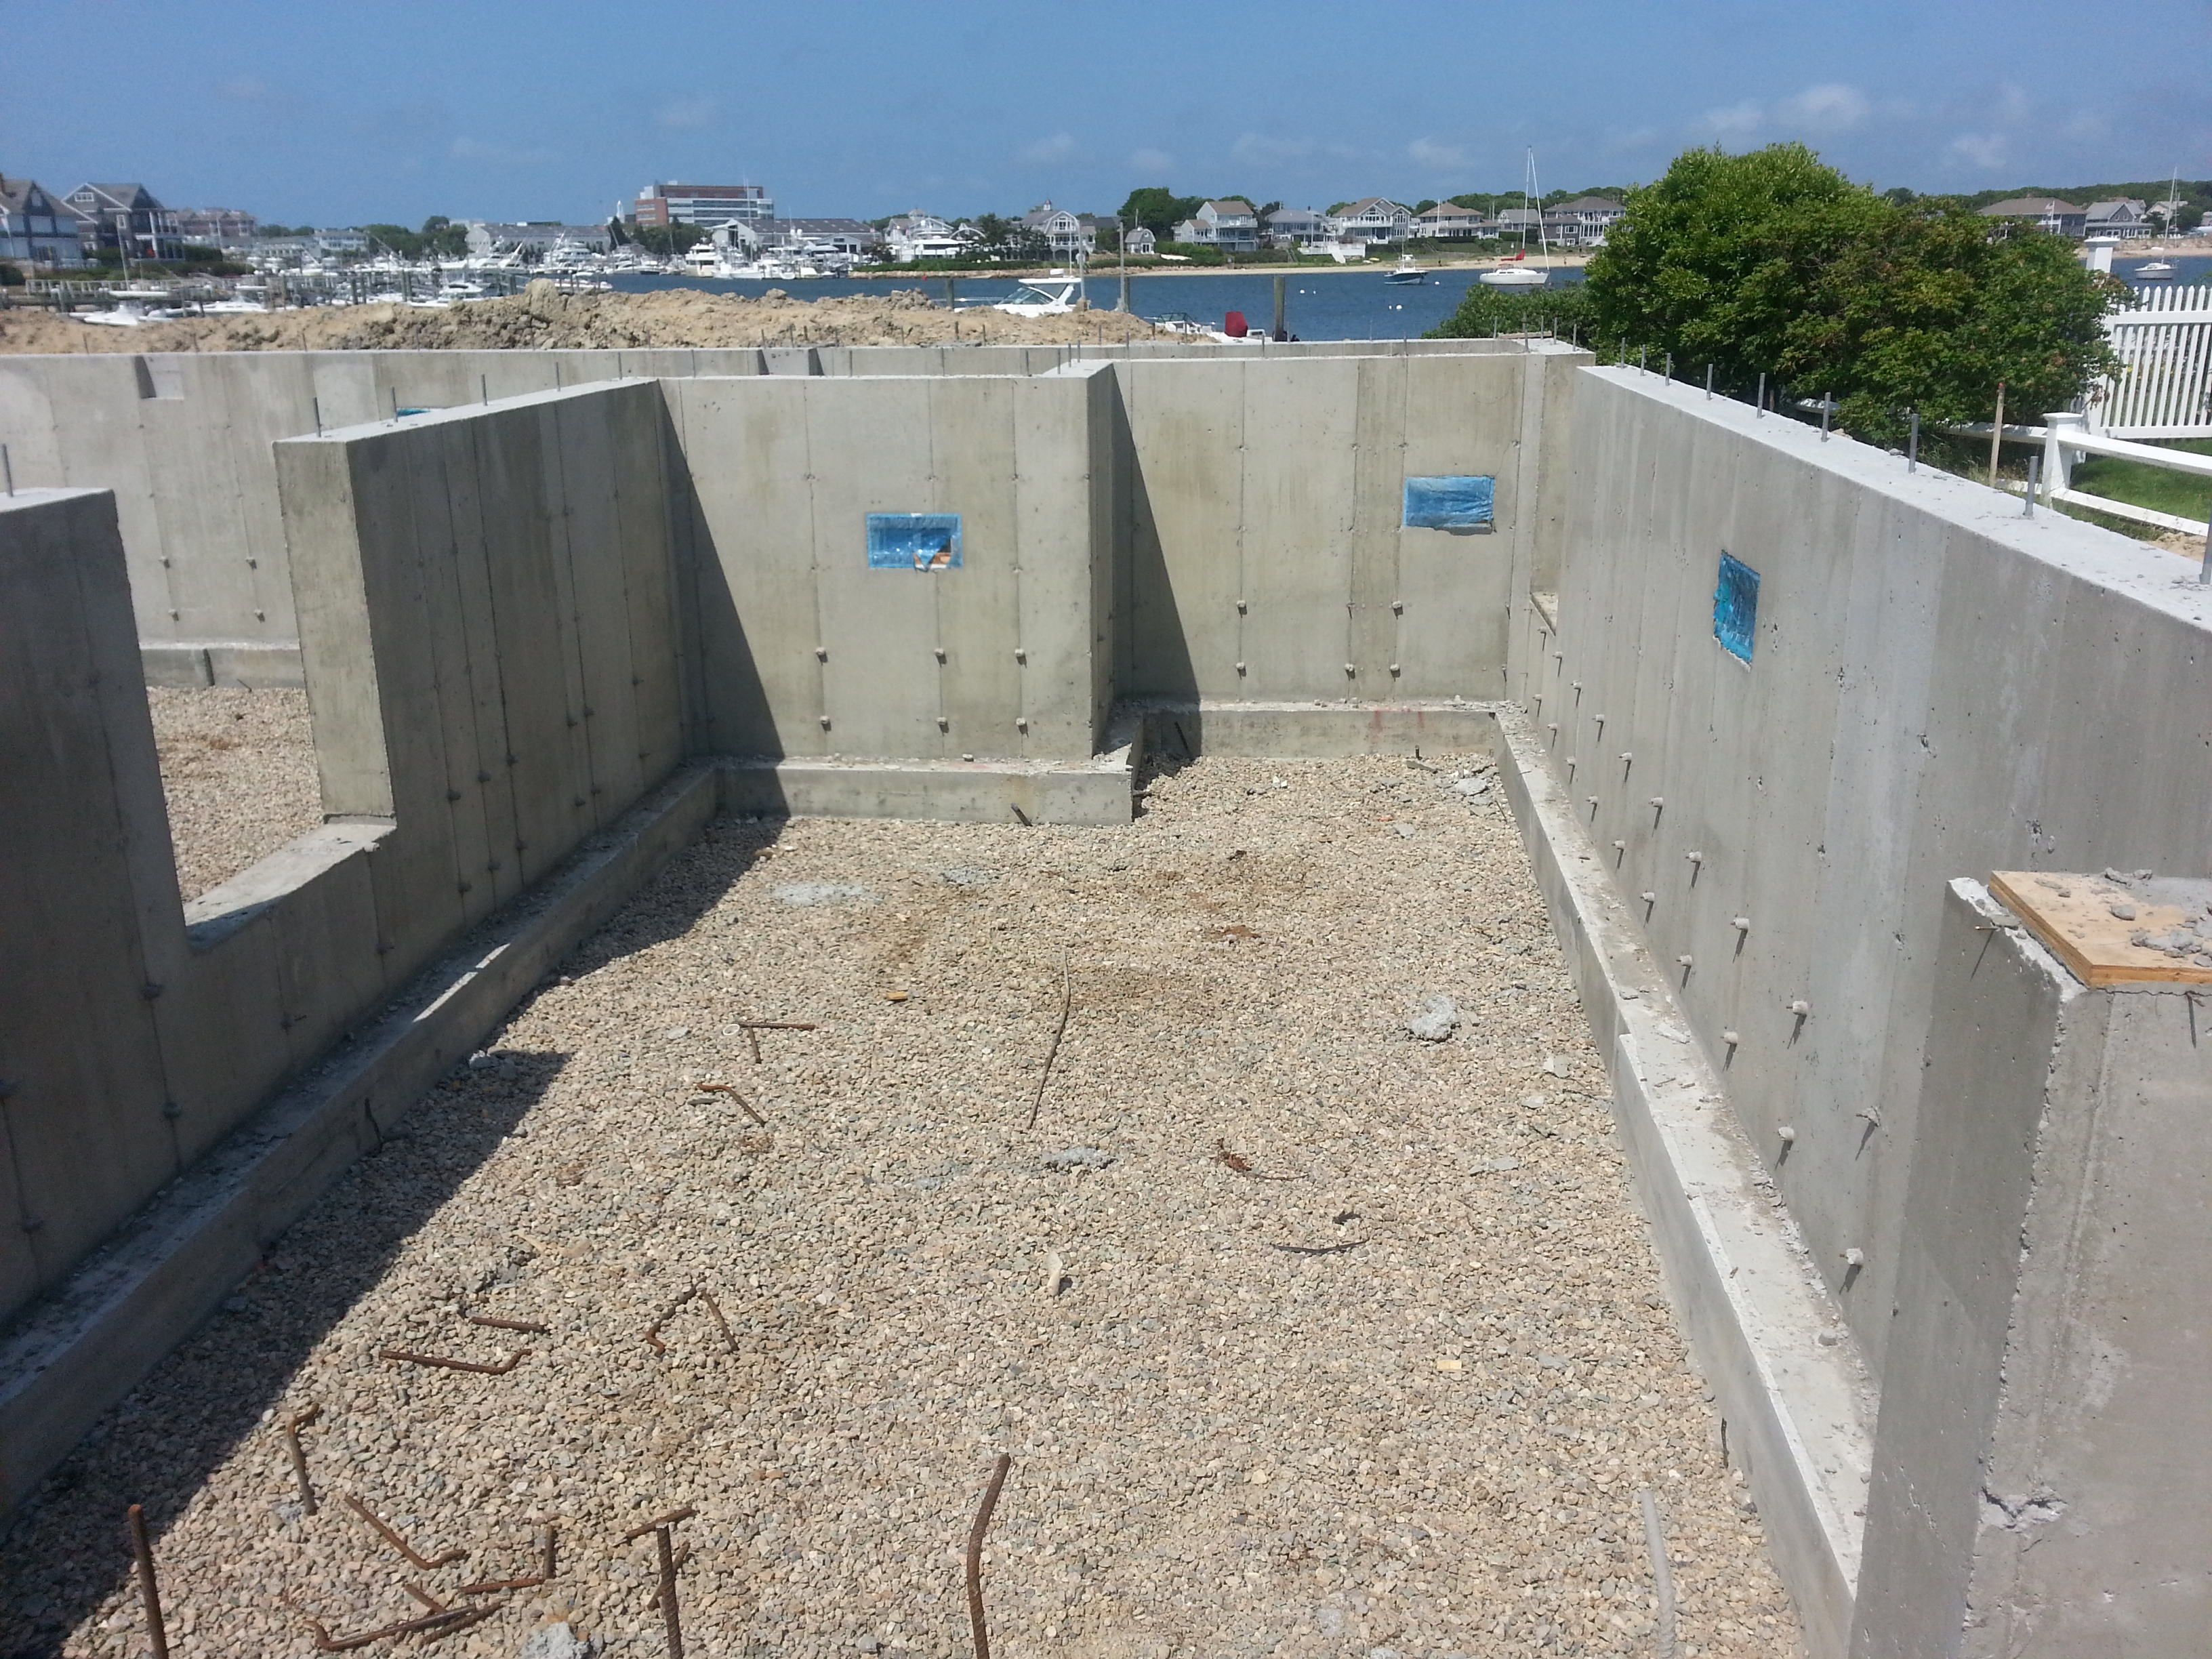 Construction projects along the coast or in other areas  with a high risk of flooding are subject to following FEMA's regulations, including a flood proof foundation such as the one pictured here.